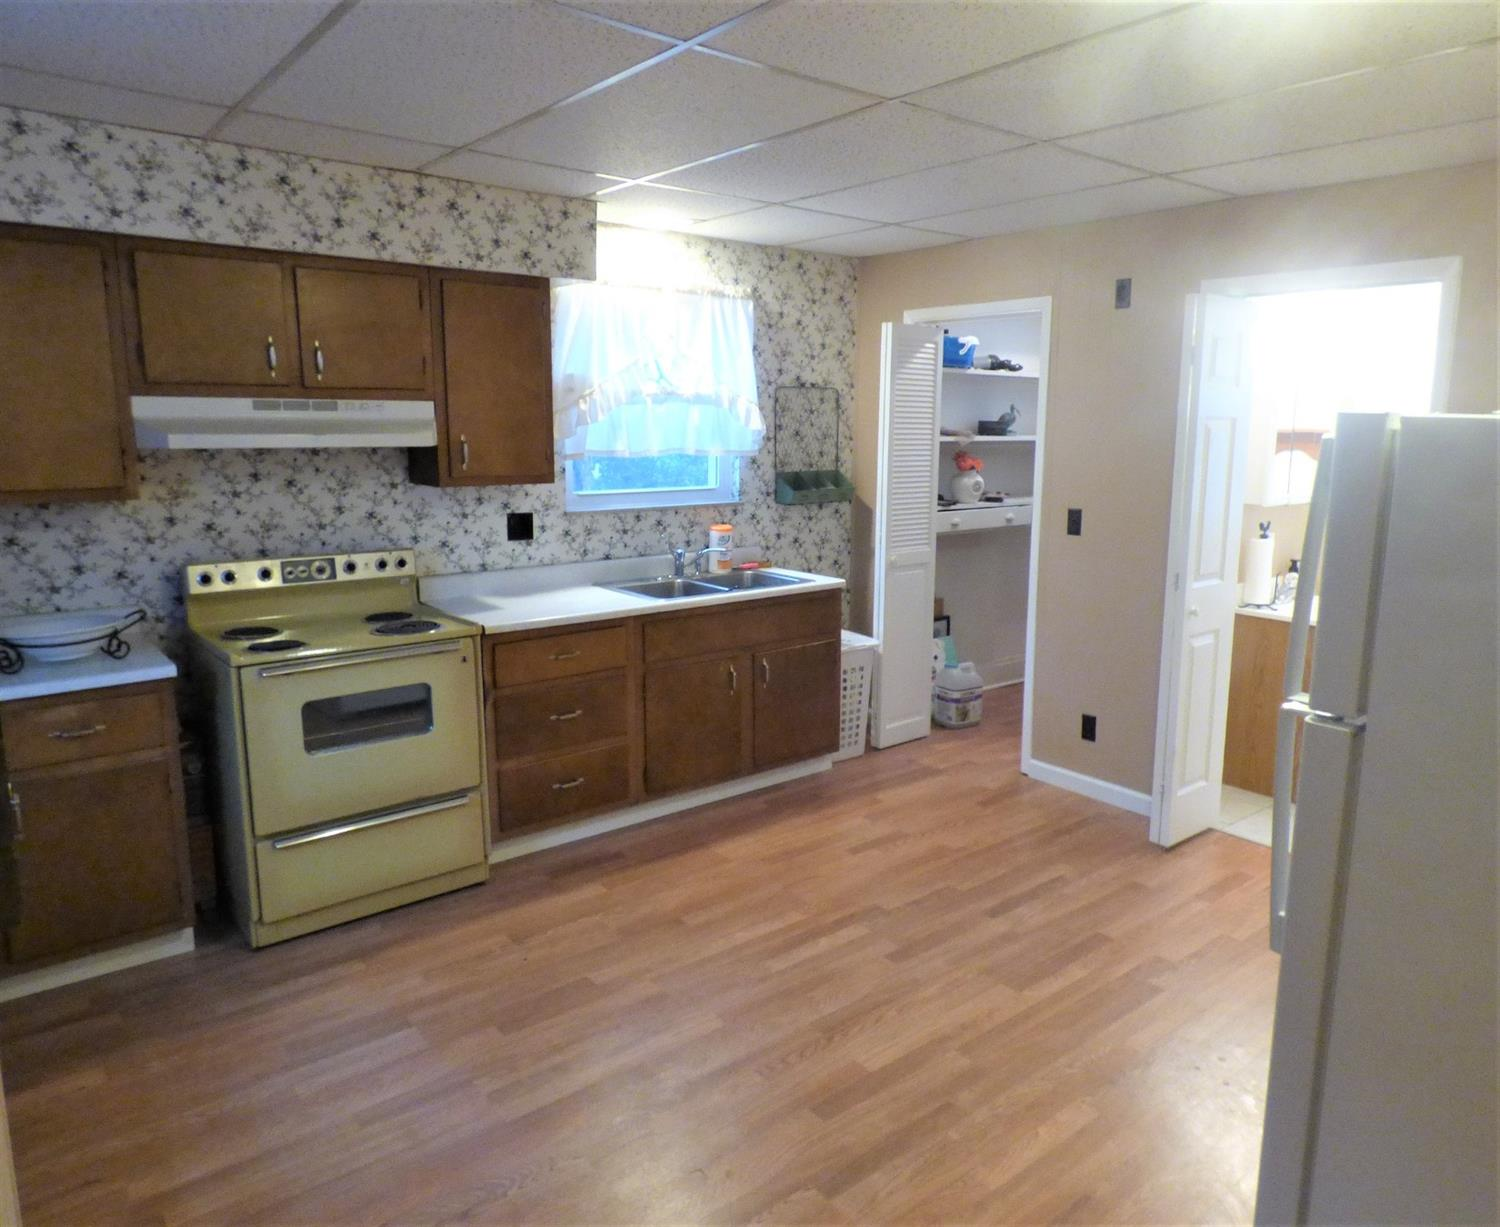 Photo 3 for 4706 Greenlee Ave St. Bernard, OH 45217